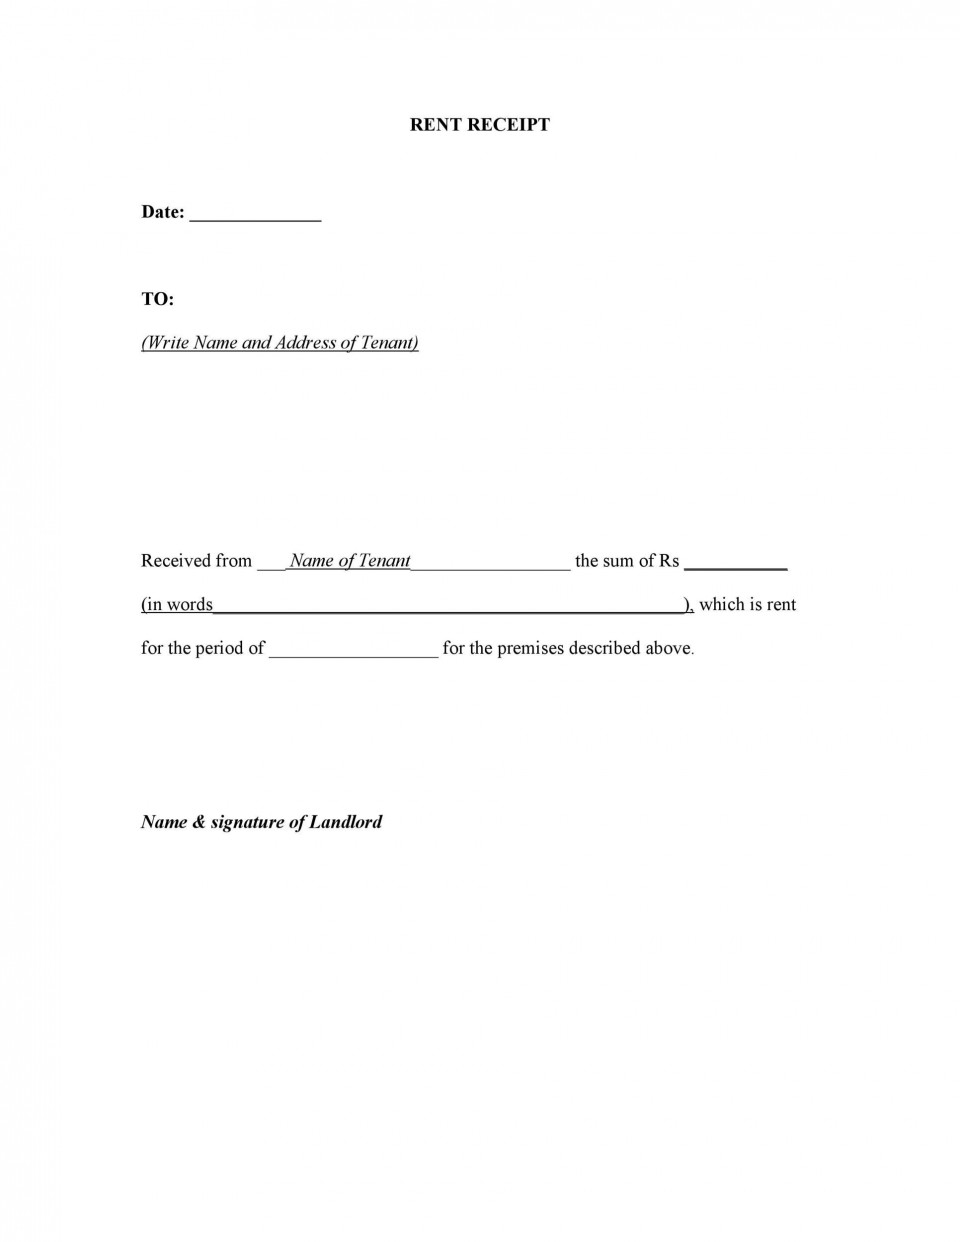 007 Unbelievable Rent Receipt Sample Doc High Definition  Template India Format Free Download960